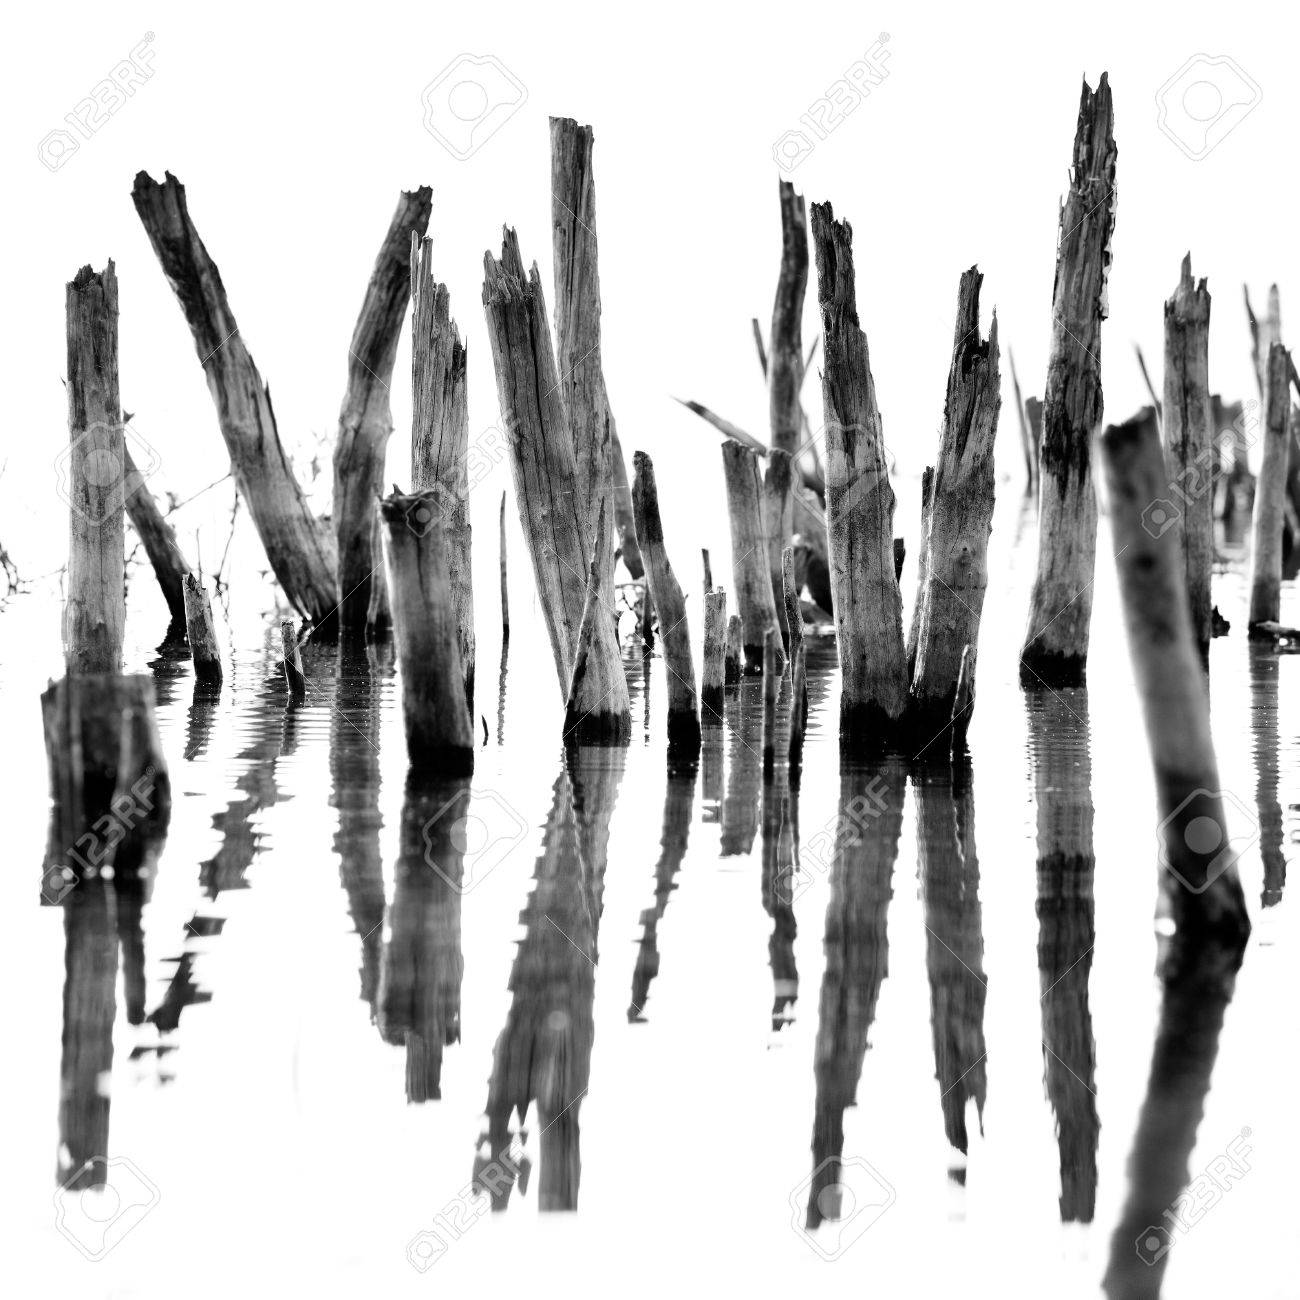 black and white abstract landscape of old dry tree in water stock photo